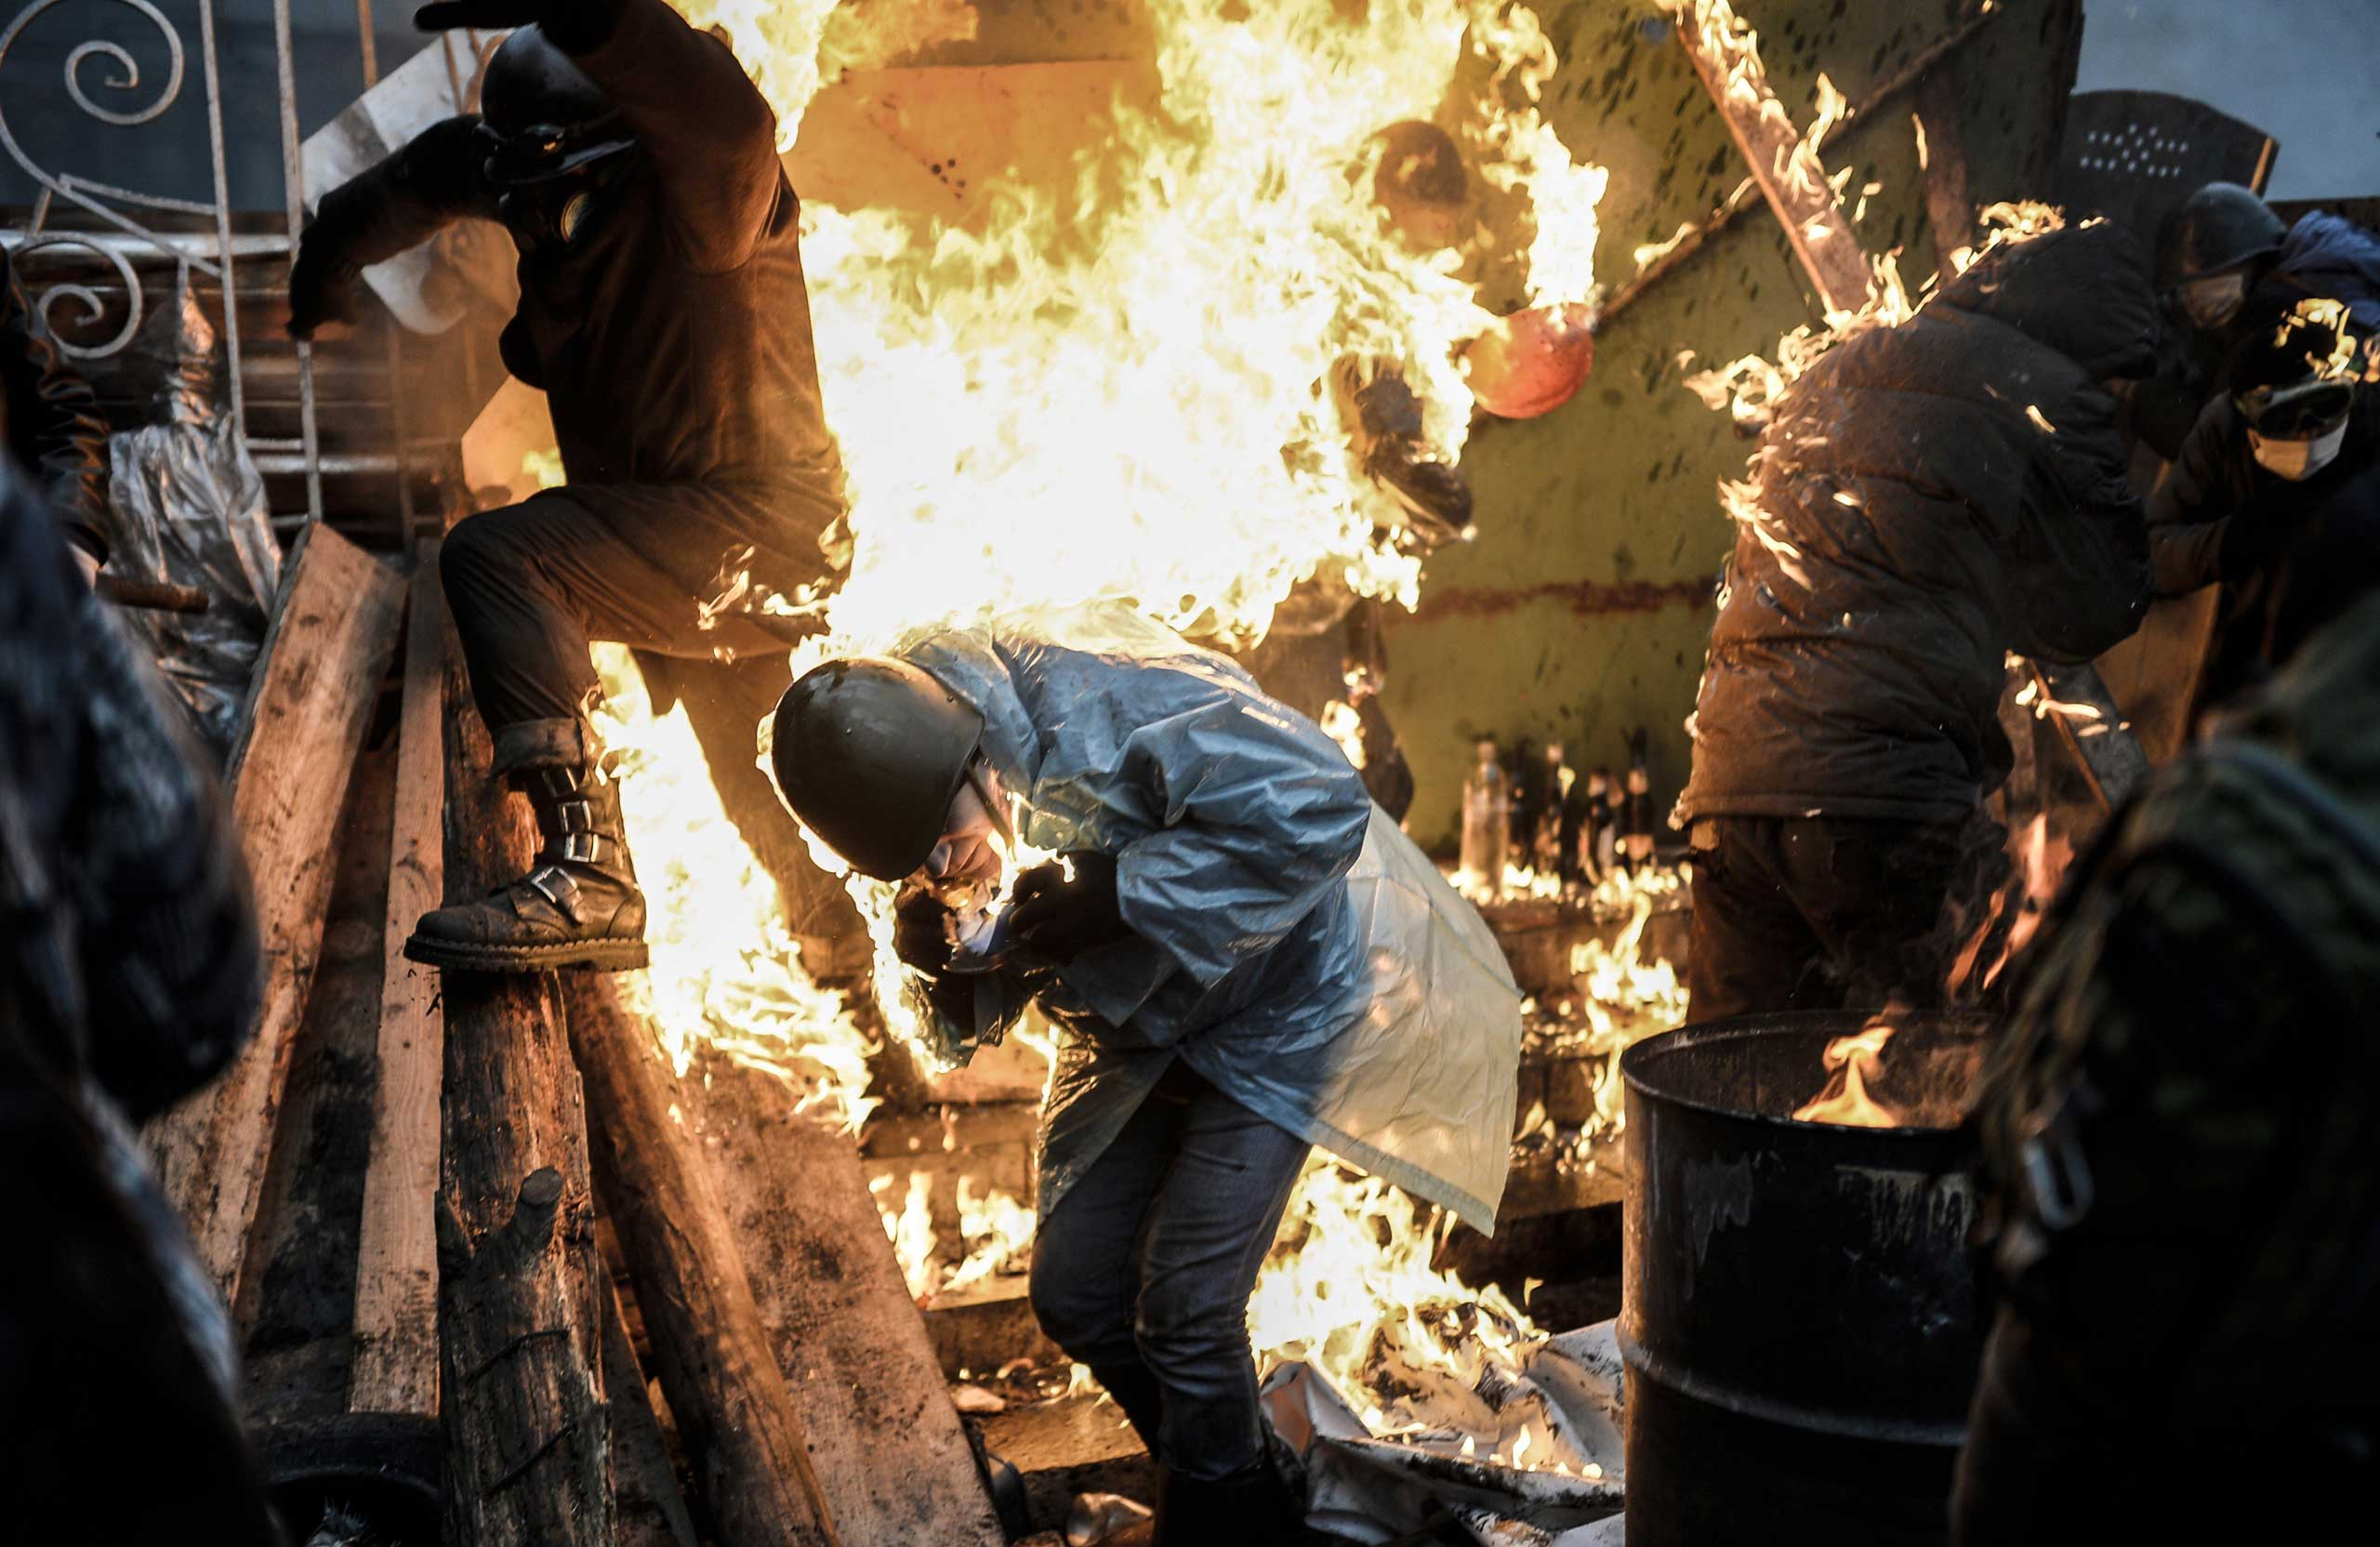 Protesters burn as they stand behind barricades during clashes with police on Feb. 20, 2014 in Kiev, Ukraine.